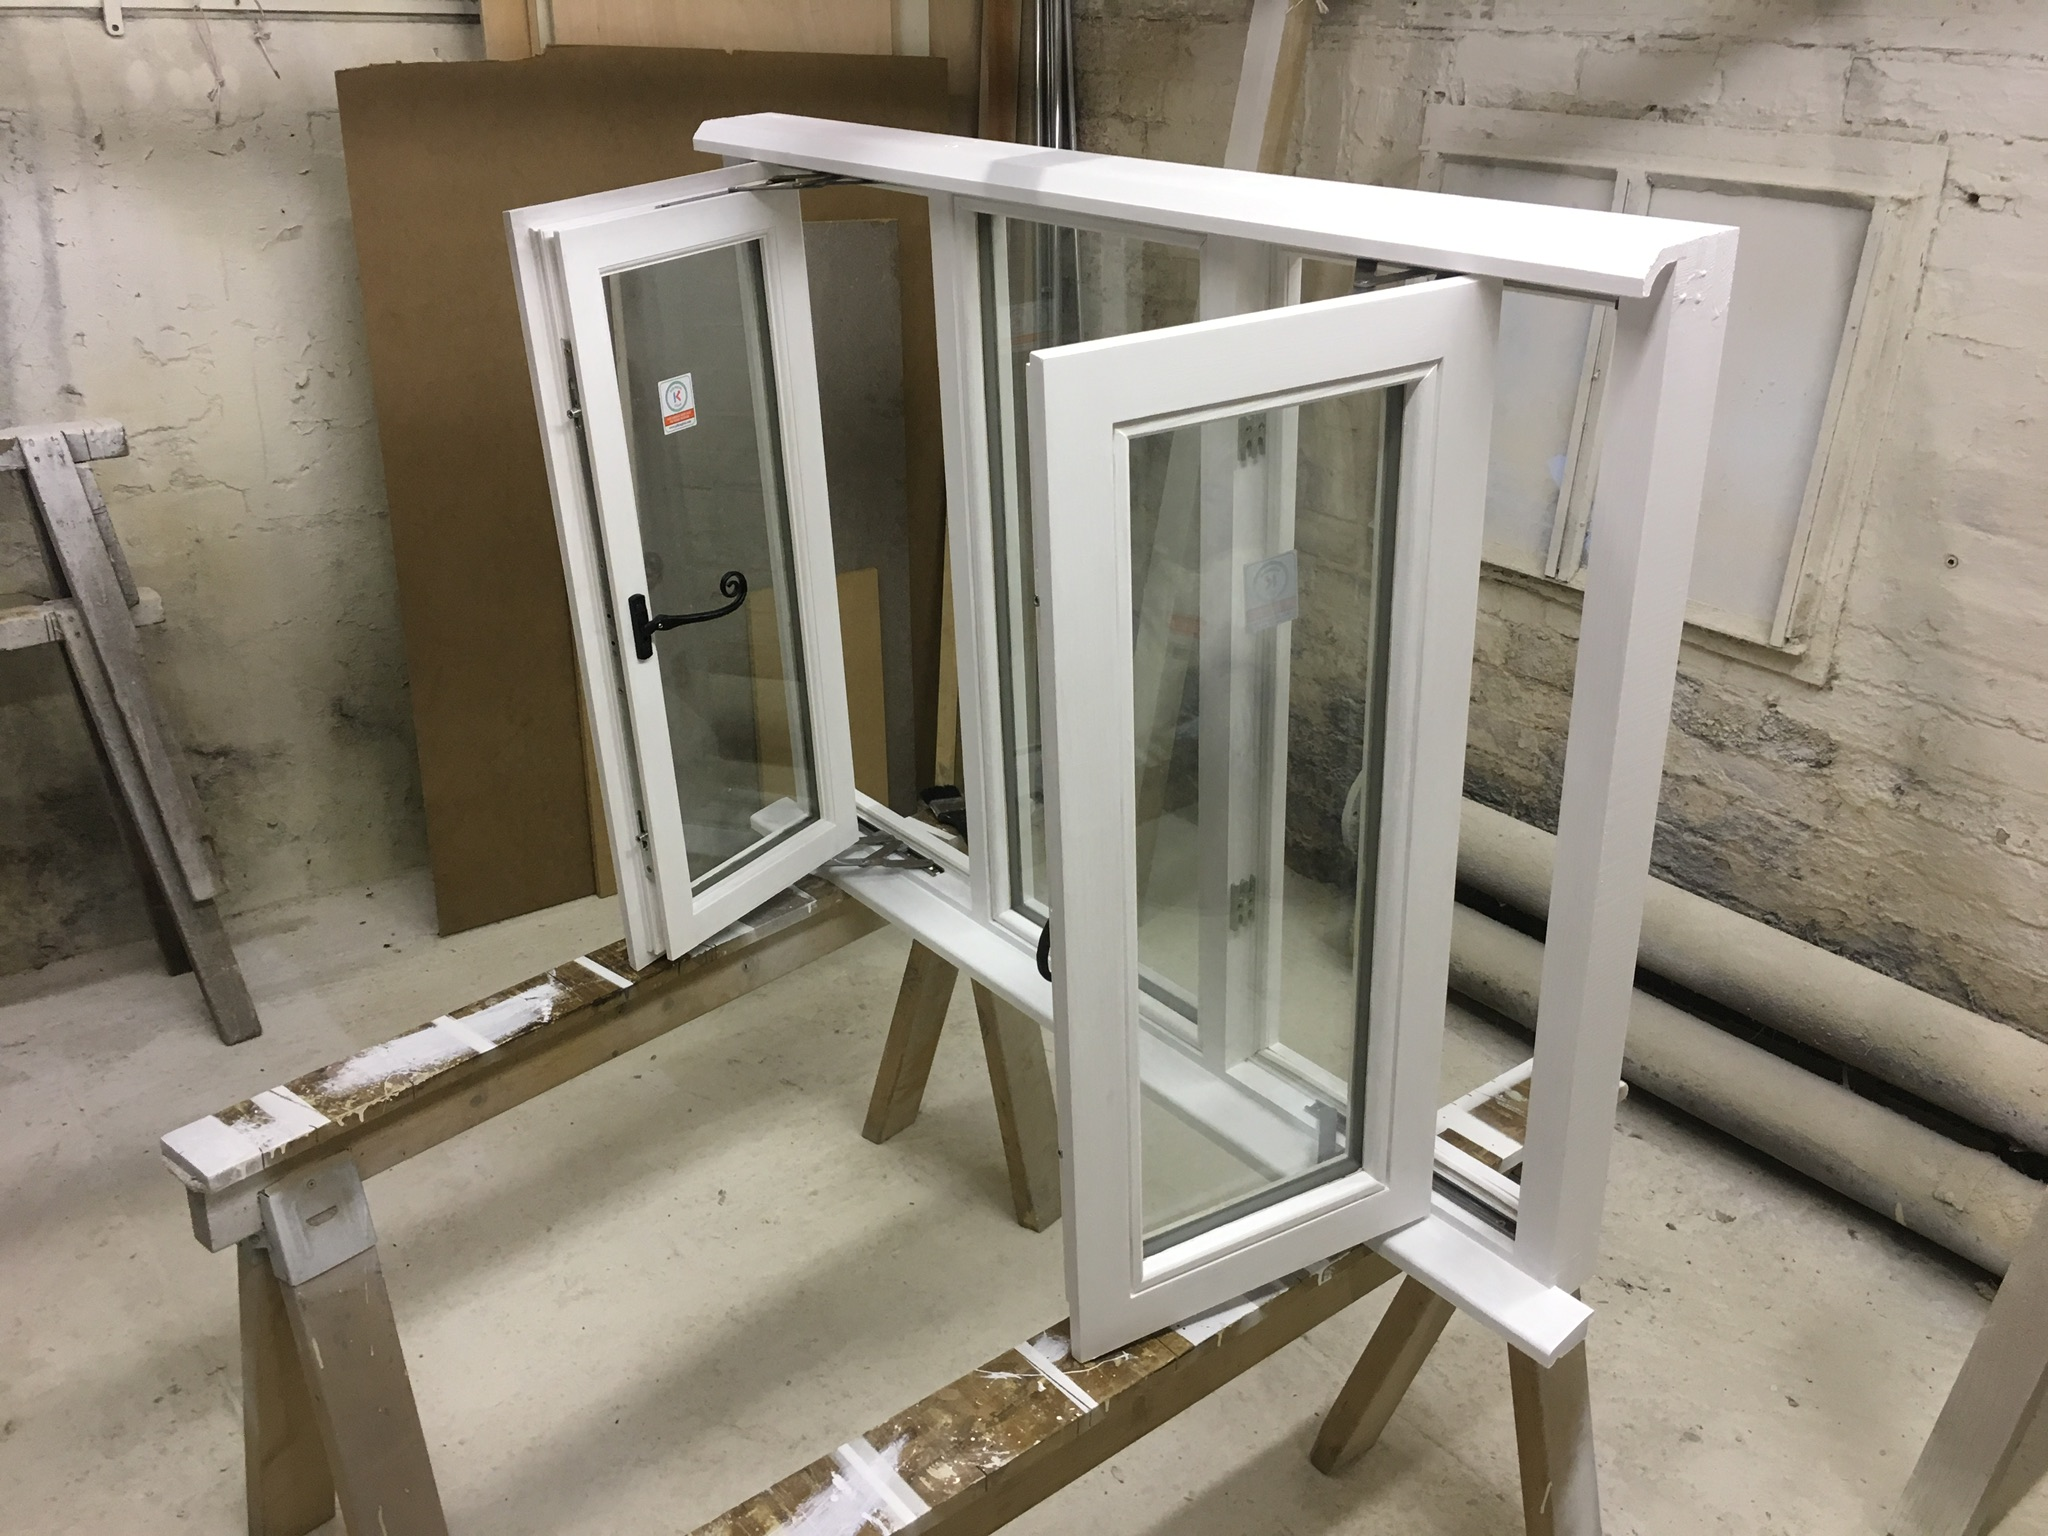 Assembled window